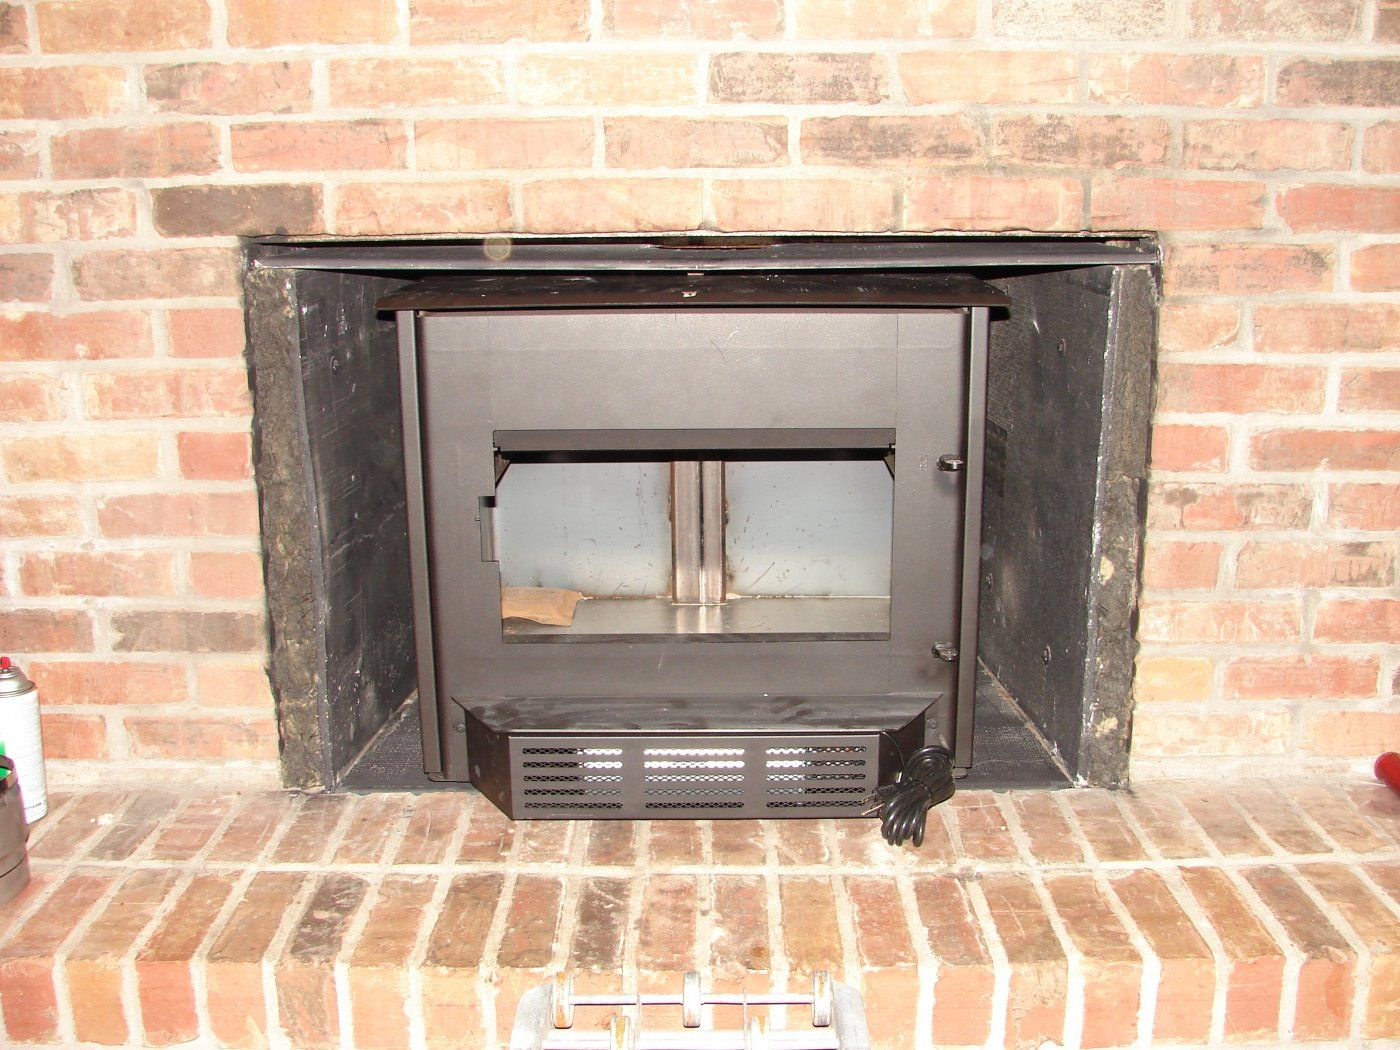 JPG DSC06524. - New Wood Stove Insert Install Cw2900 Hearth.com Forums Home